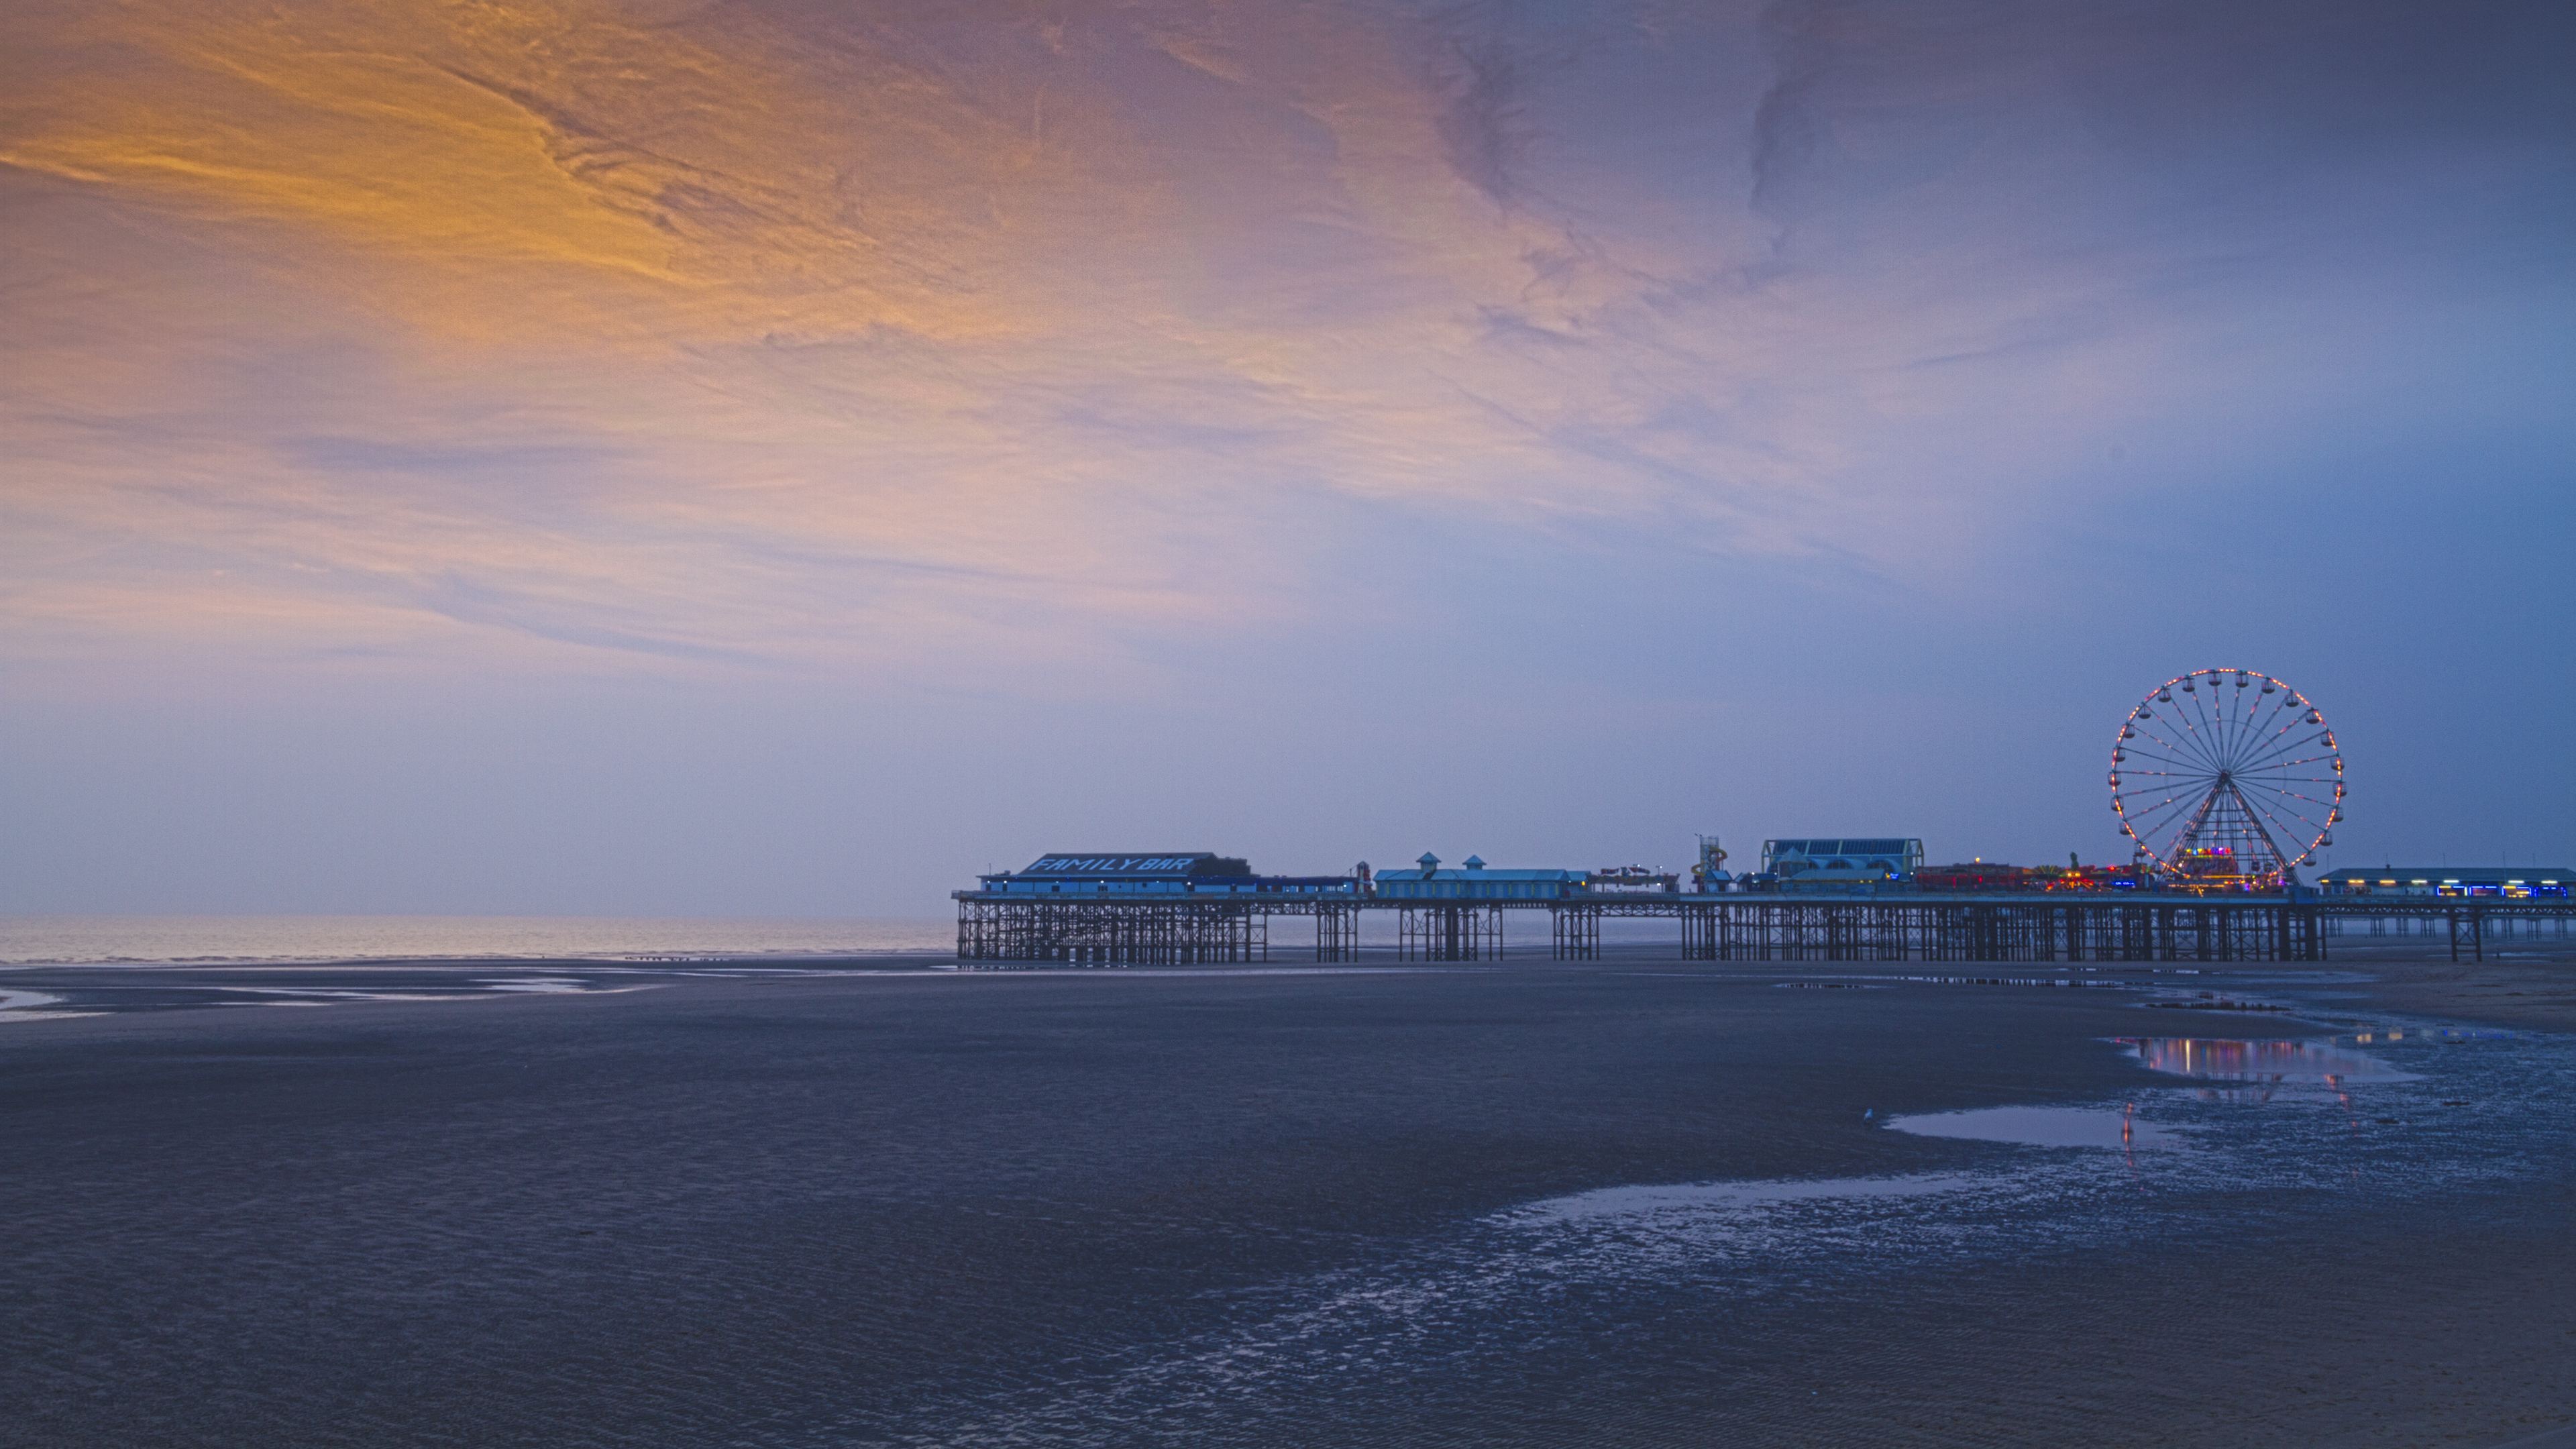 Blackpool central pier sunset photo